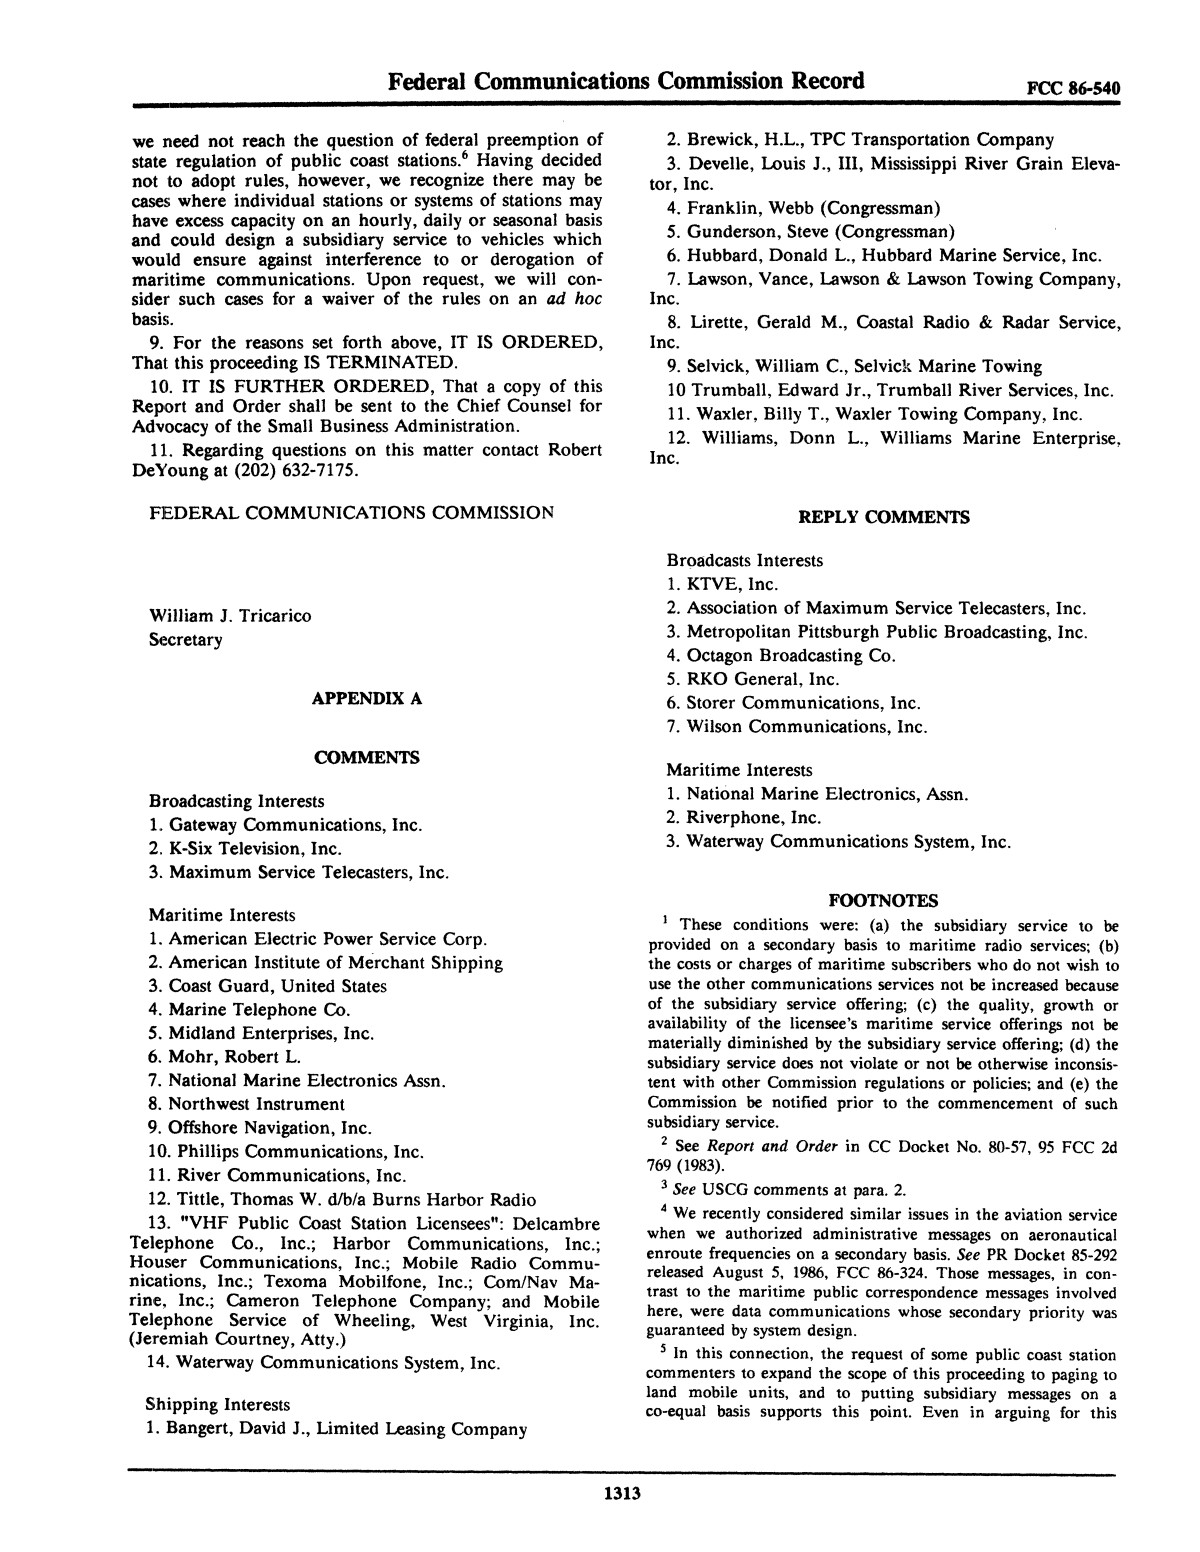 FCC Record, Volume 1, No. 7, Pages 1267 to 1368, December 22, 1986 - January 2, 1987                                                                                                      1313